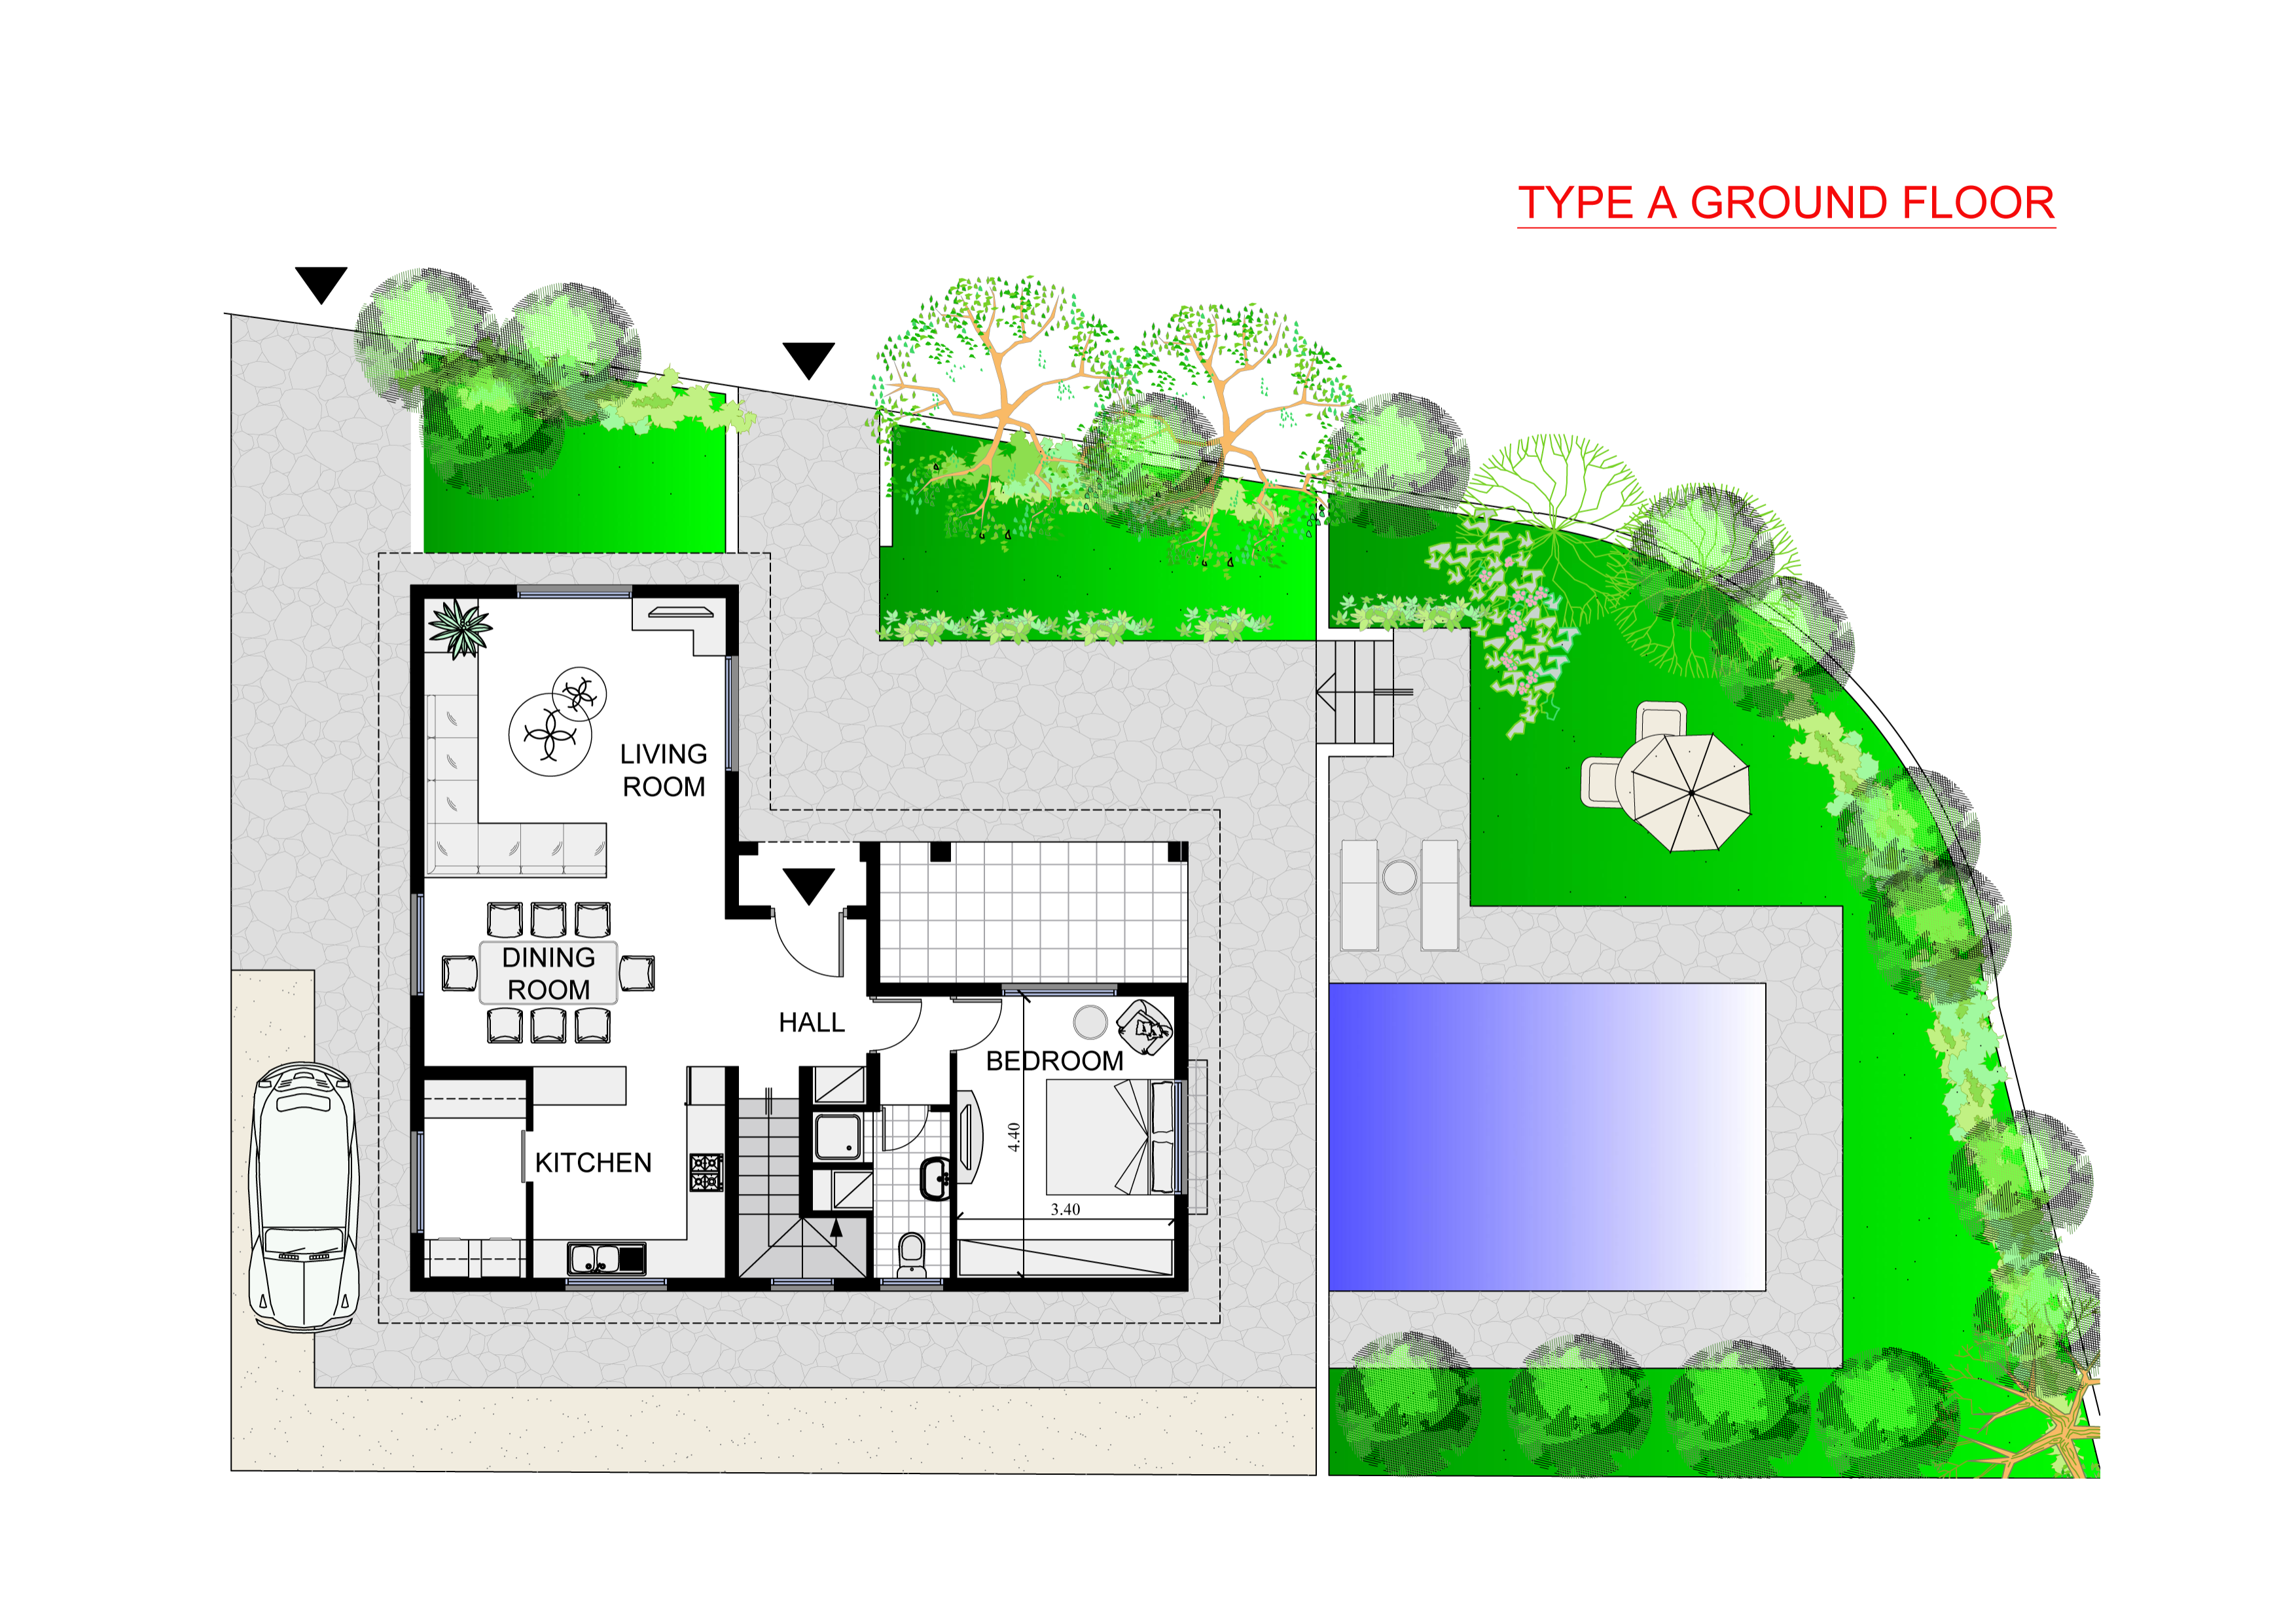 LAYOUT Droso A GROUND FLOOR